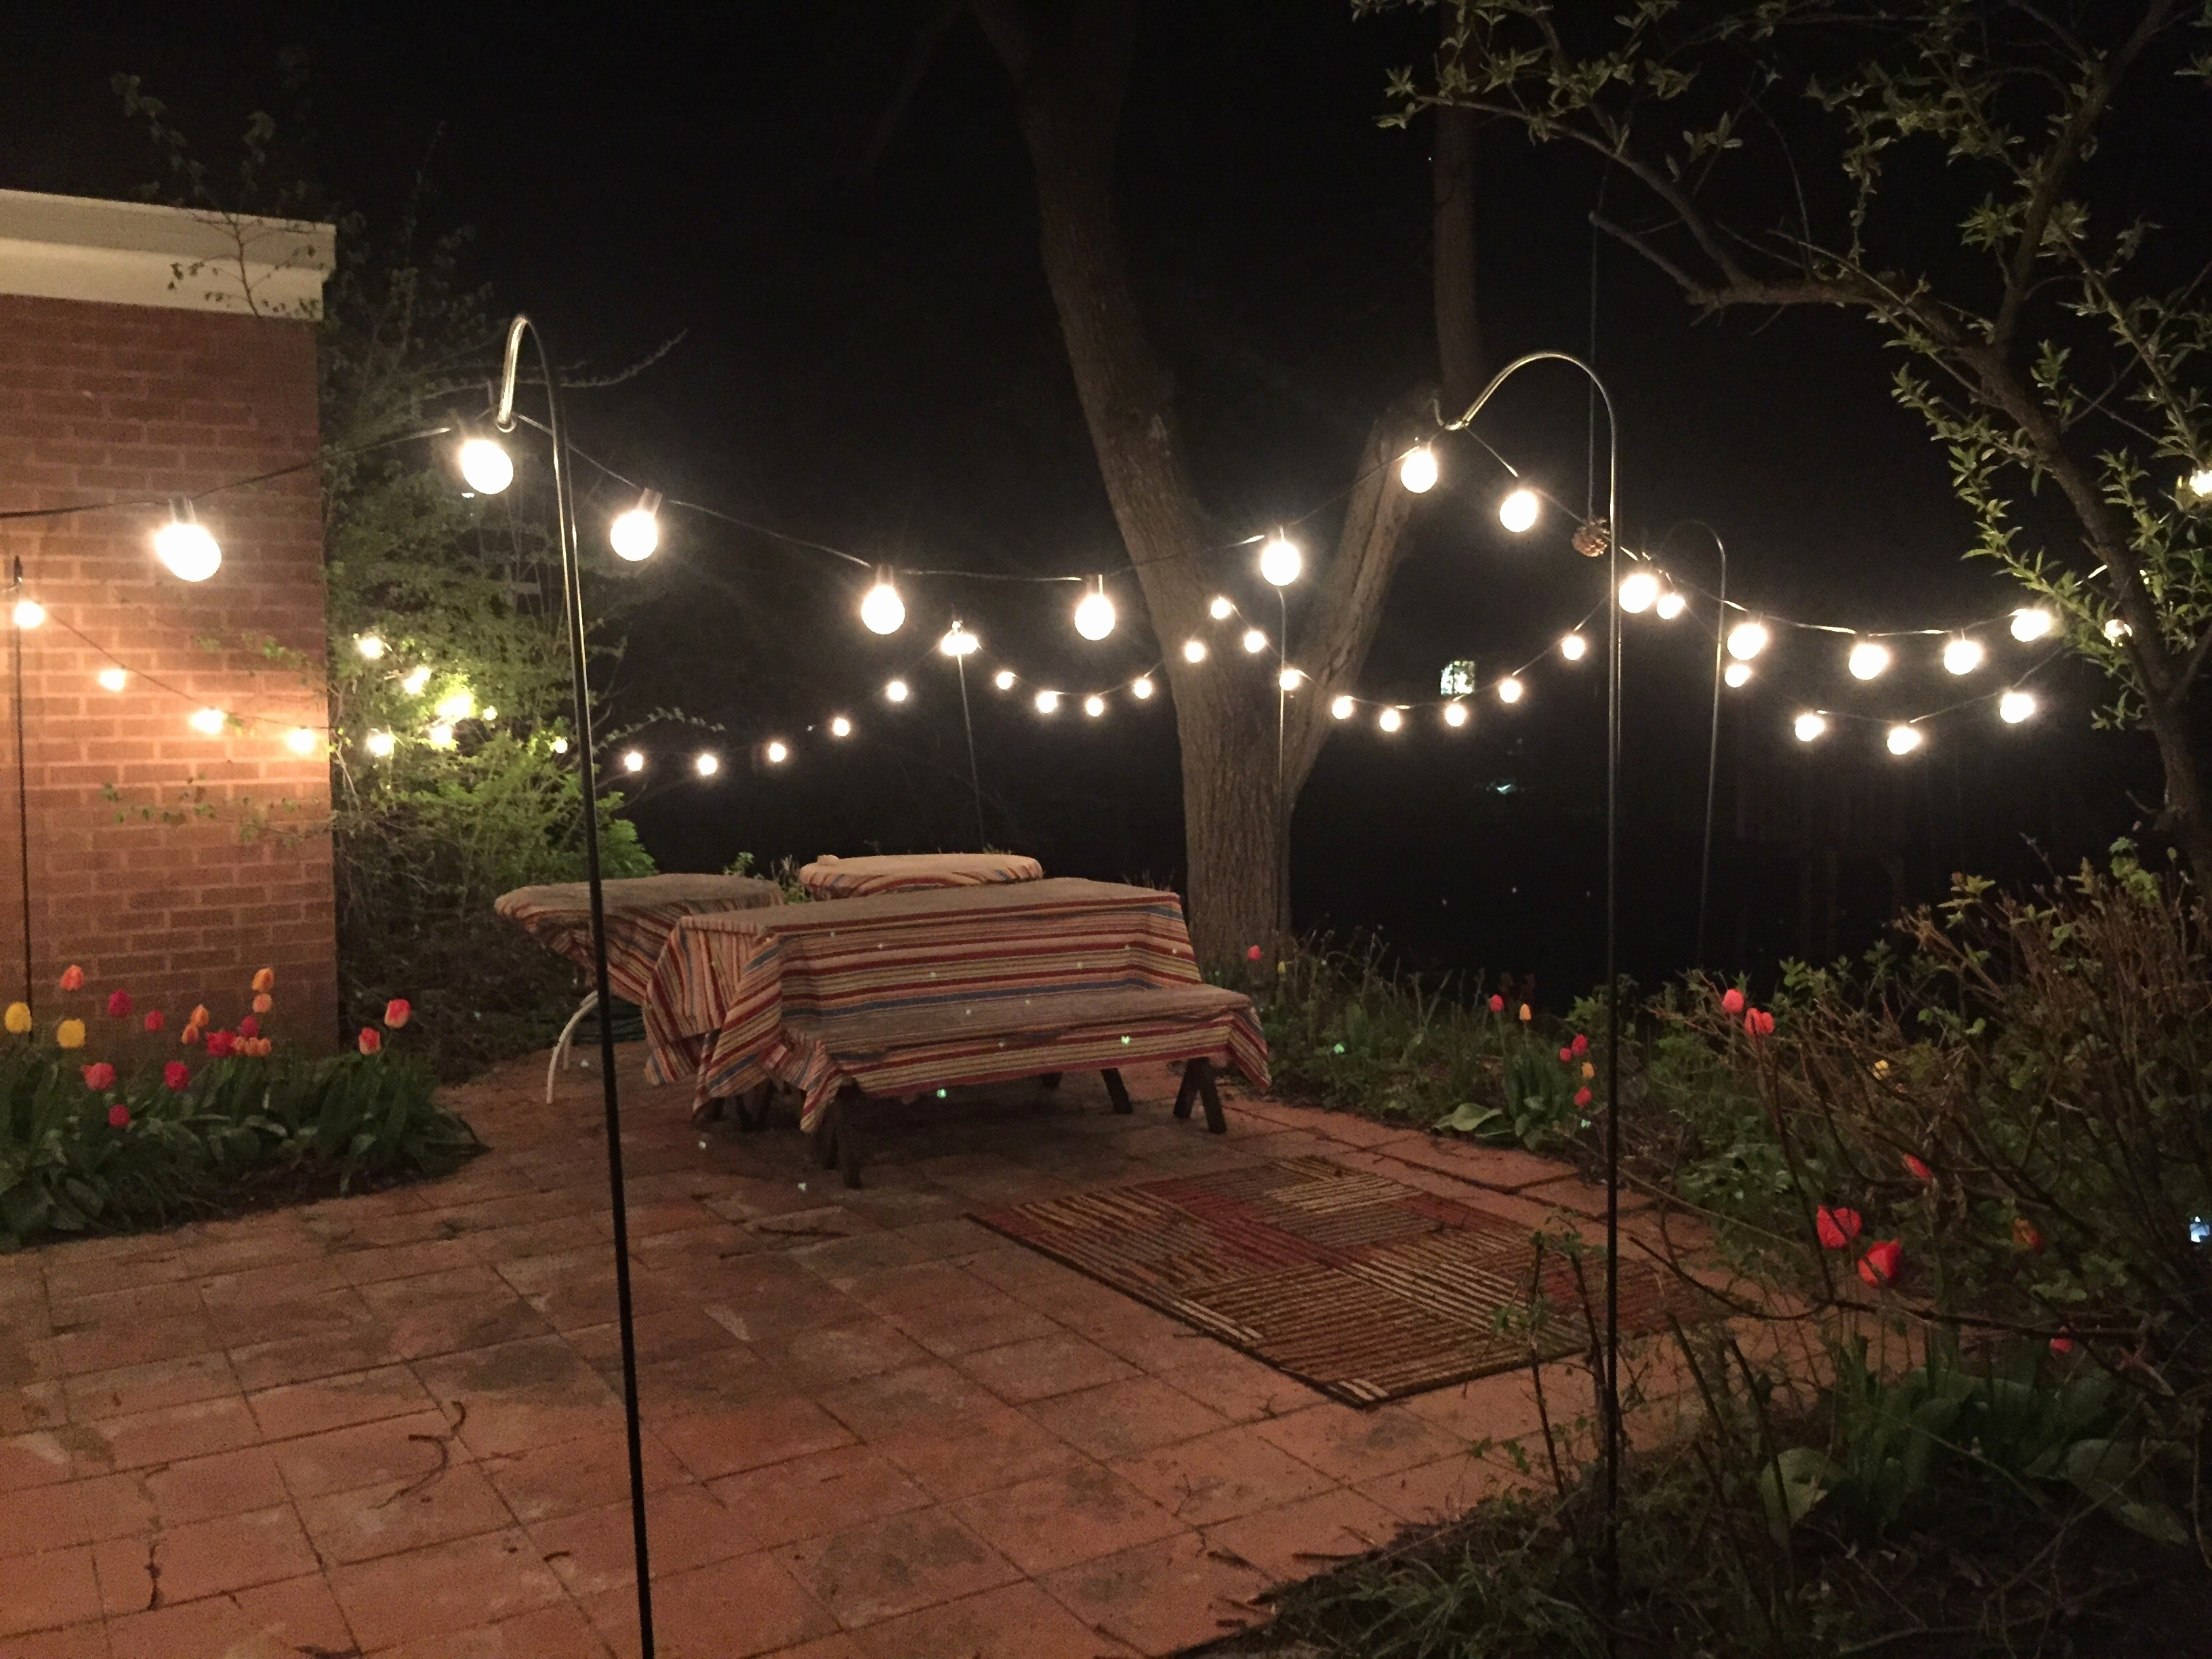 Lighting : Outdoor String Lights Ideas Commandtm Hooks Light Clips Intended For Latest Outdoor String Lights At Target (View 8 of 20)